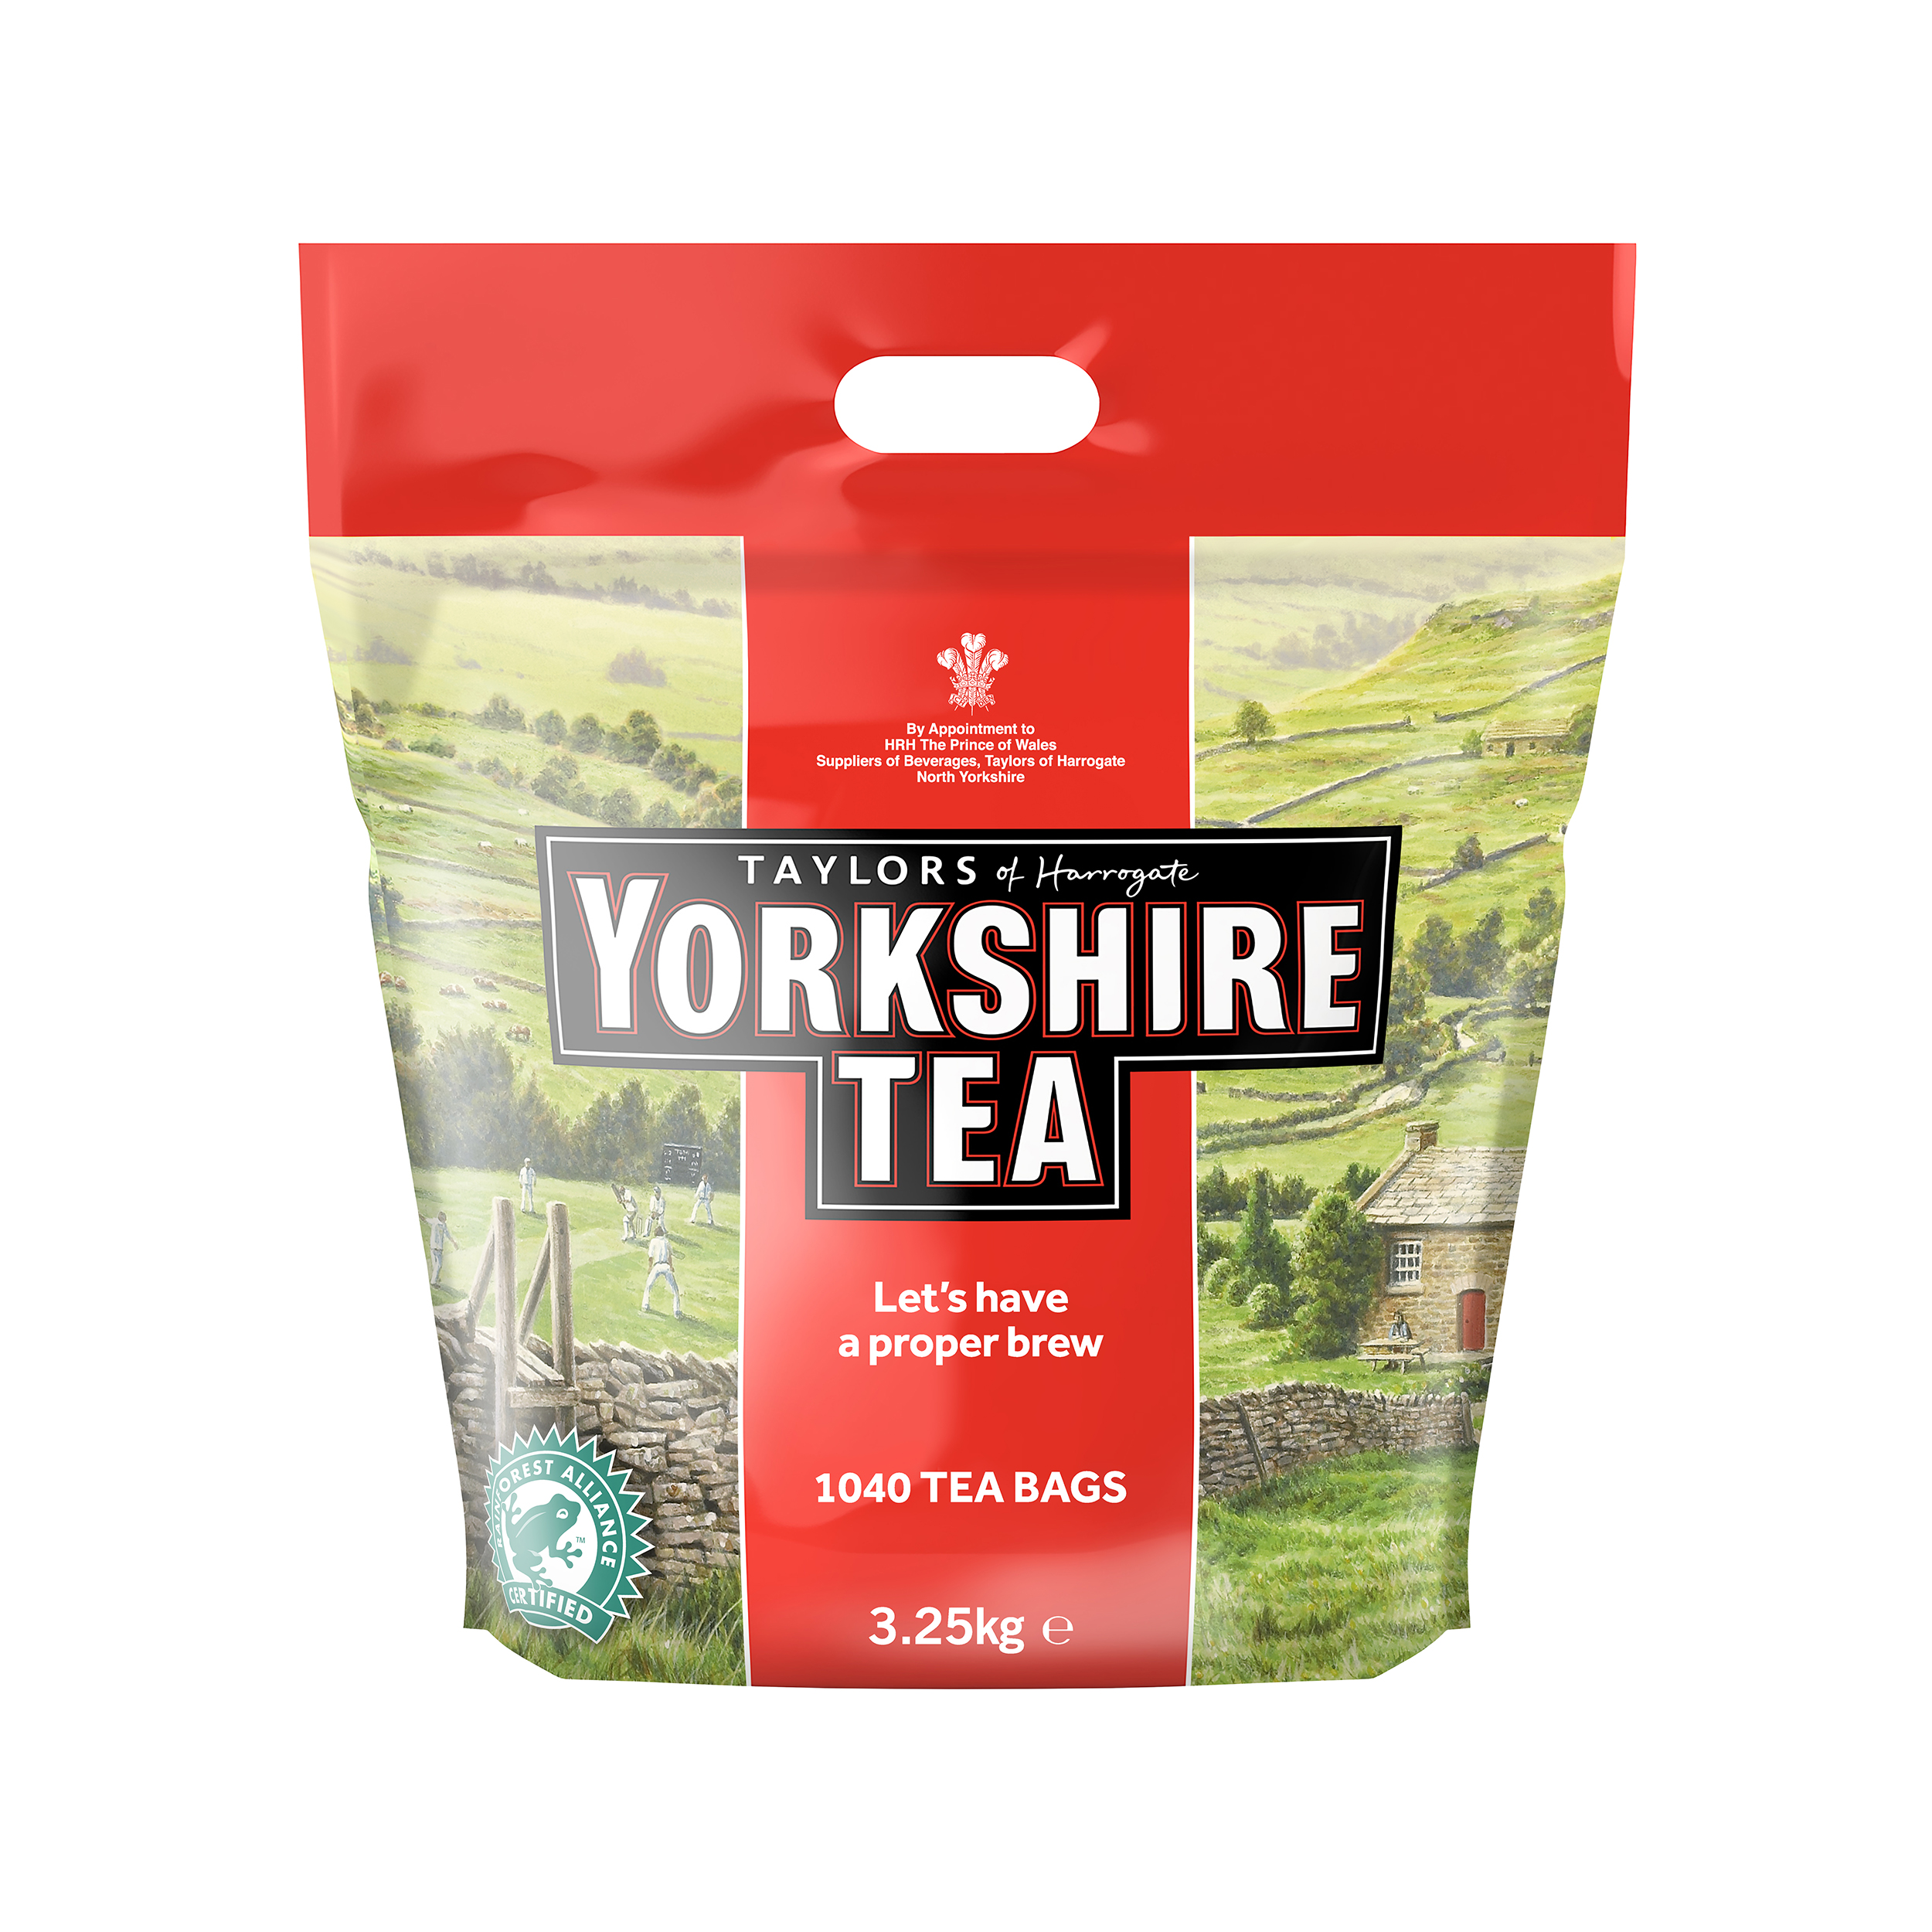 Yorkshire Tea Bags Ref 0403170 [Pack 1040]